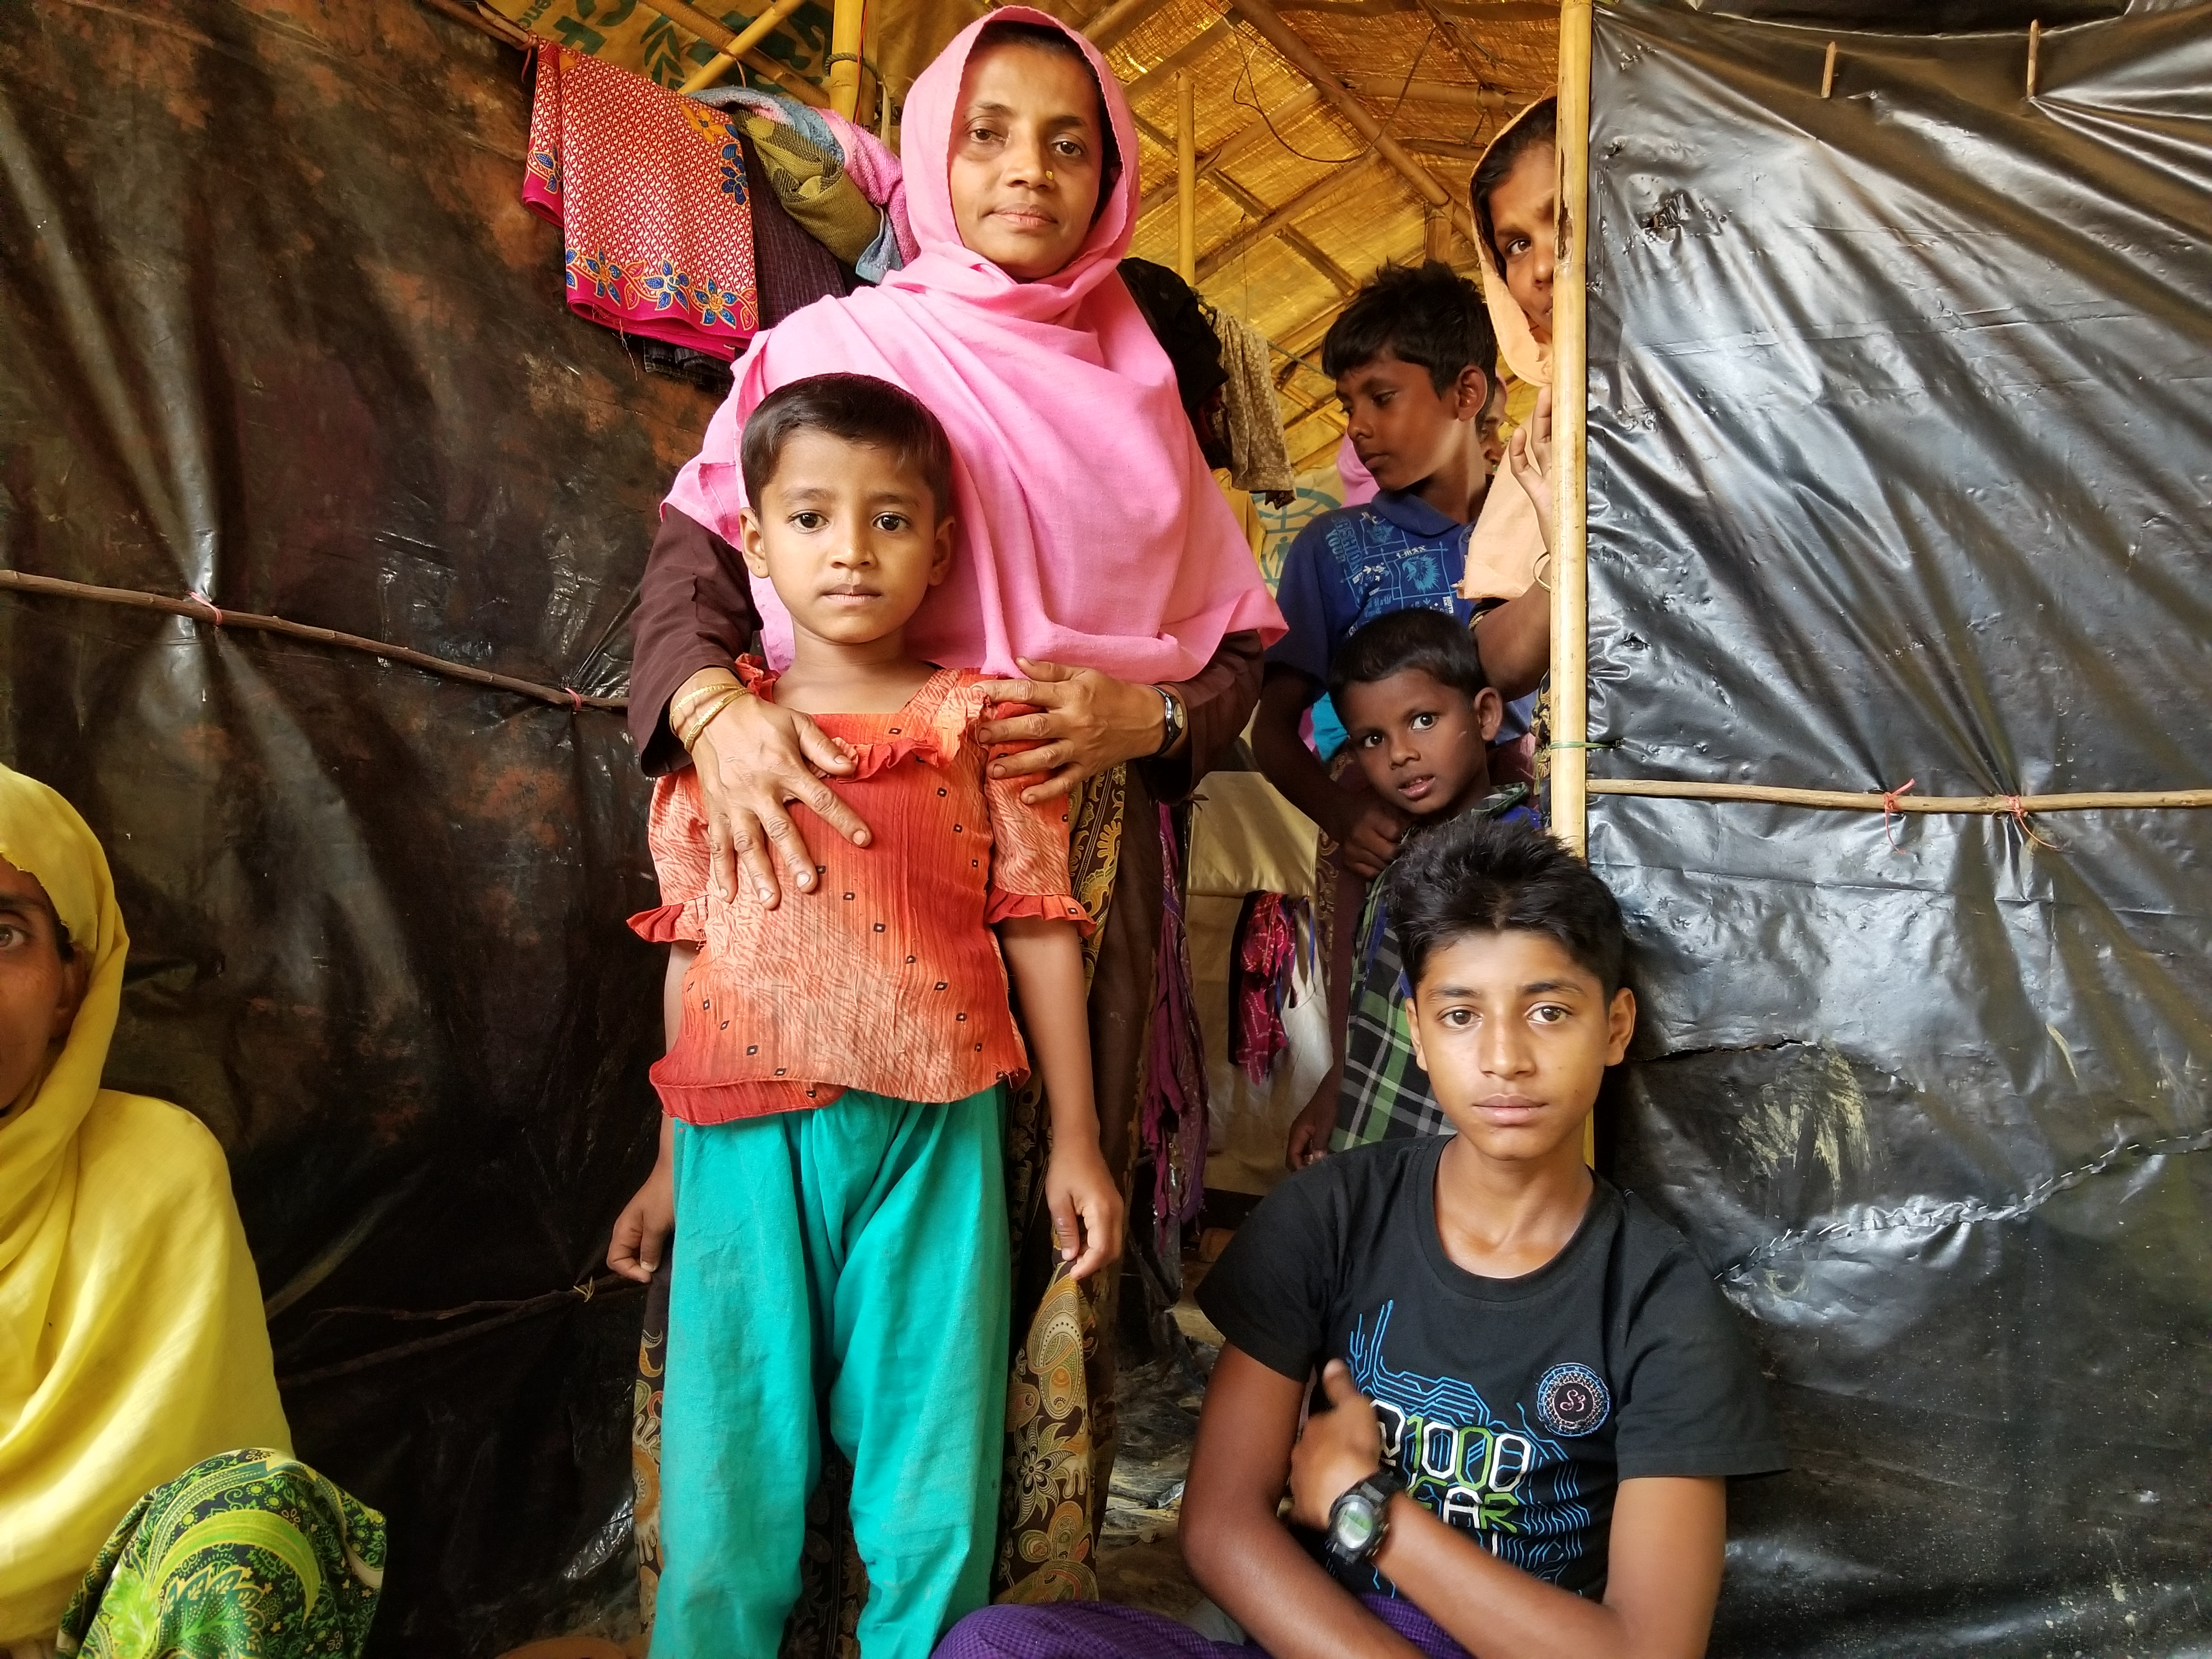 Rohingya Interviews at Kutupalong Refugee Camp, Bangladesh, Nov. 2017